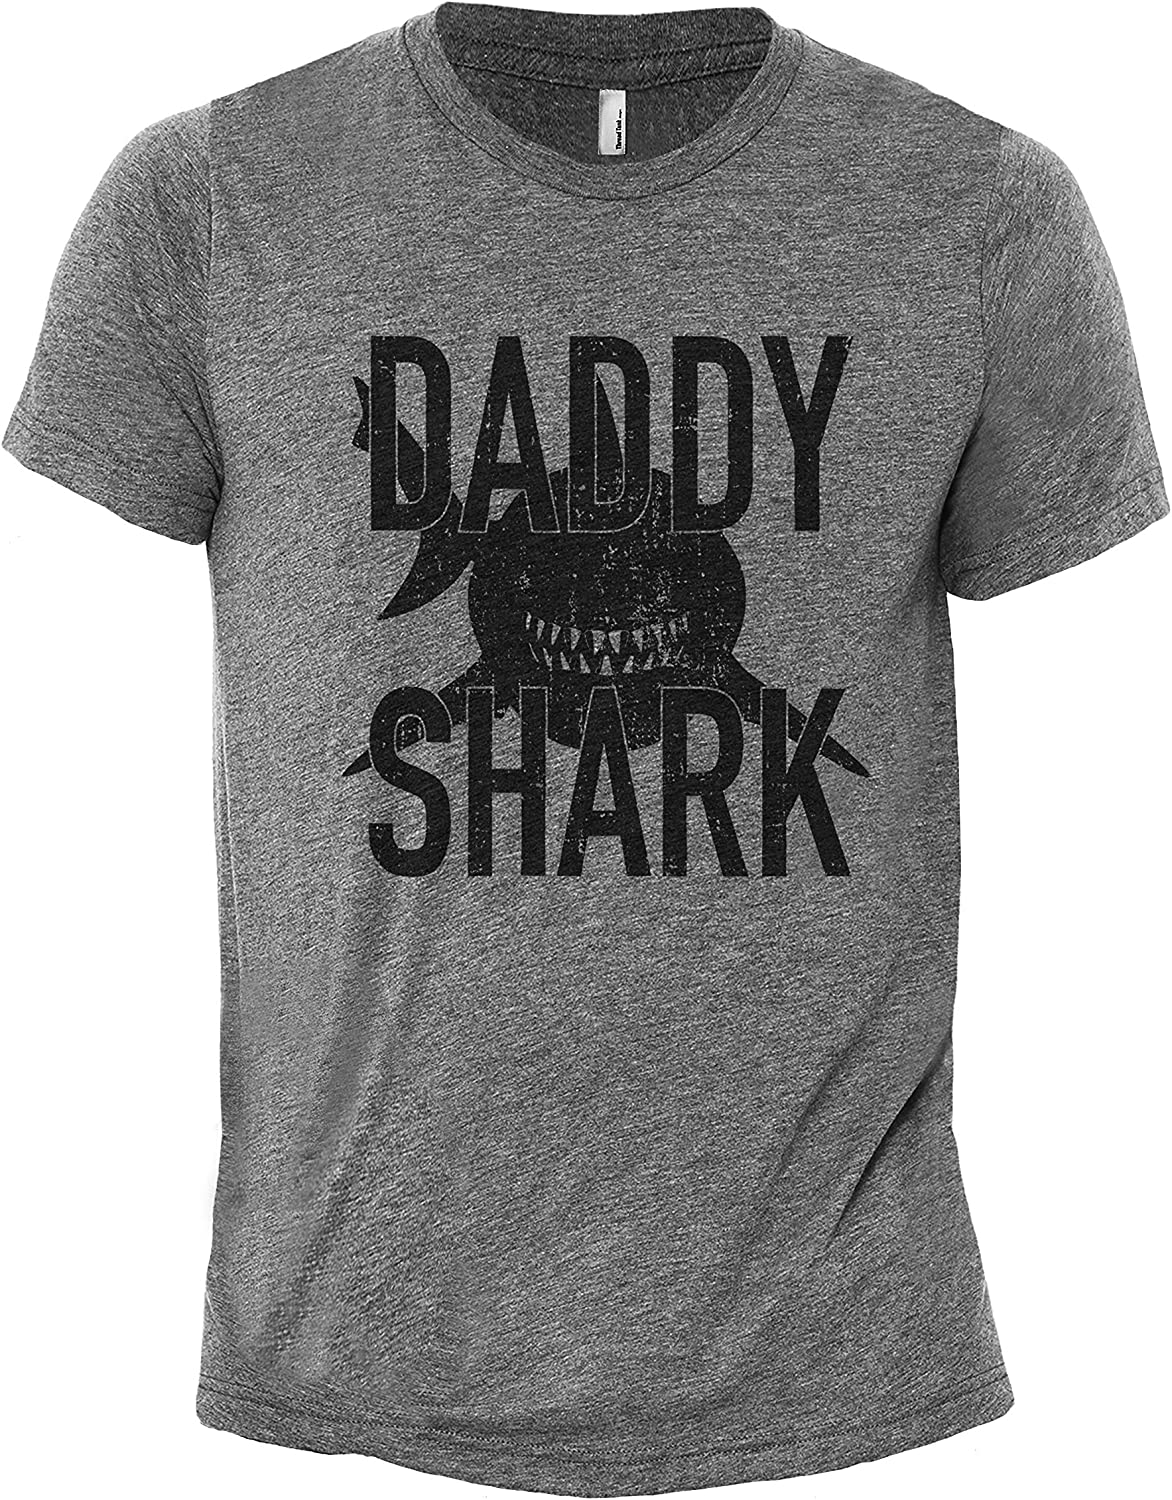 Daddy Shark Men's Crewneck Casual Fit T-Shirt Printed Graphic Tee